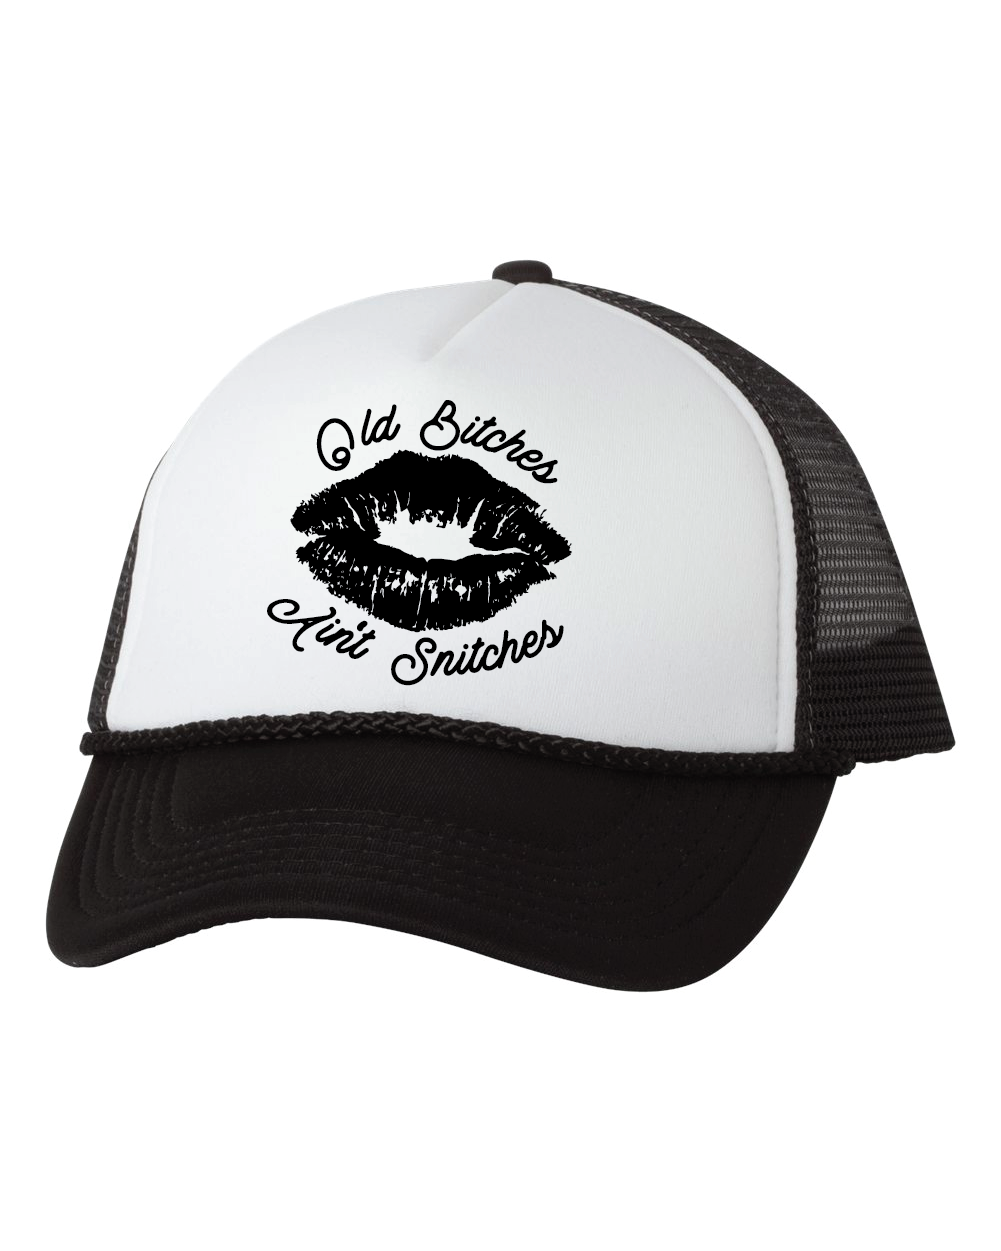 Ain't Snitches - Trucker Hat